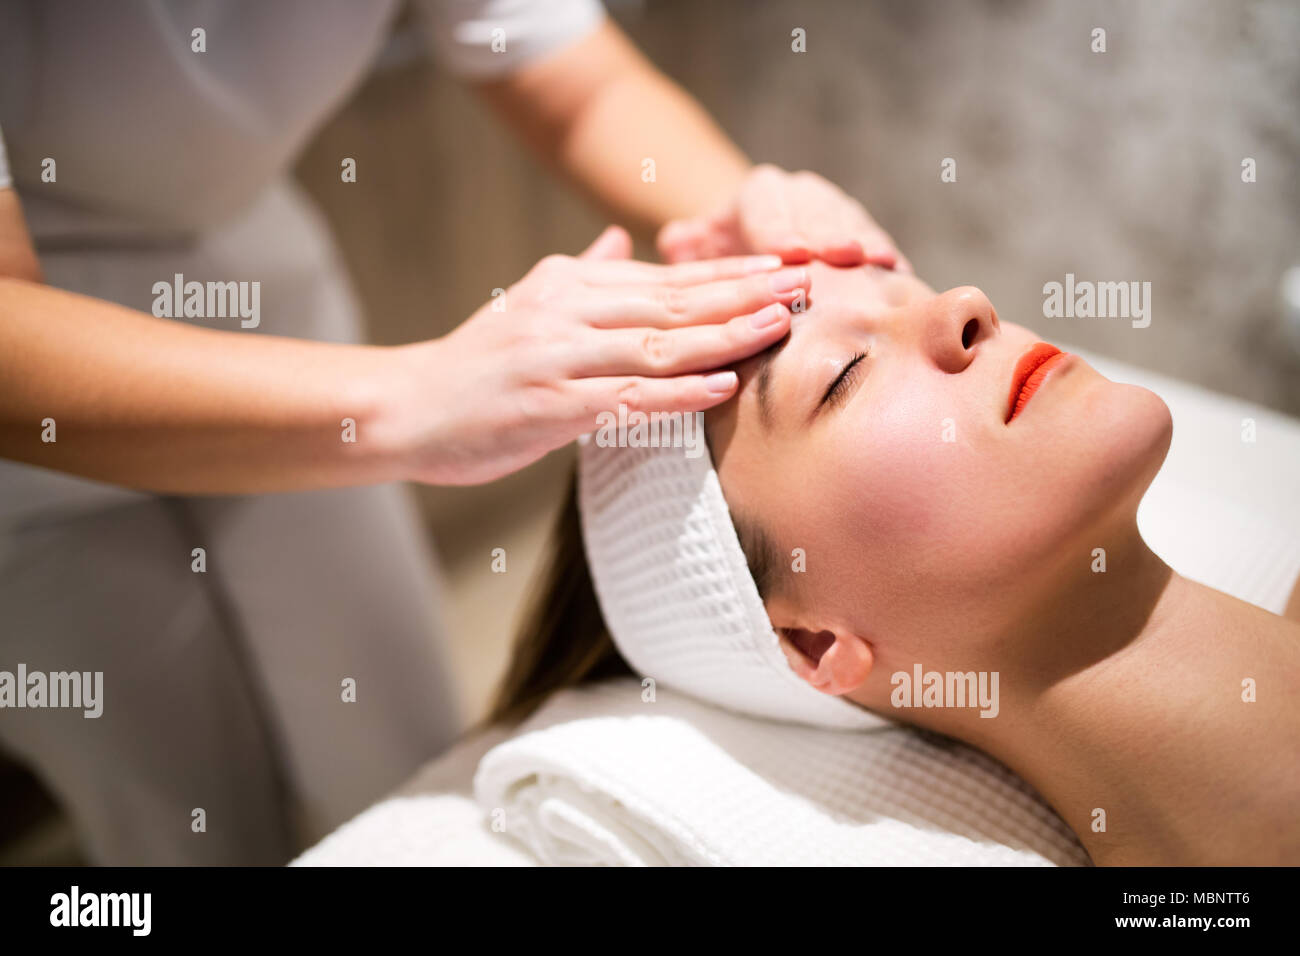 Facial massage treatment by professional - Stock Image